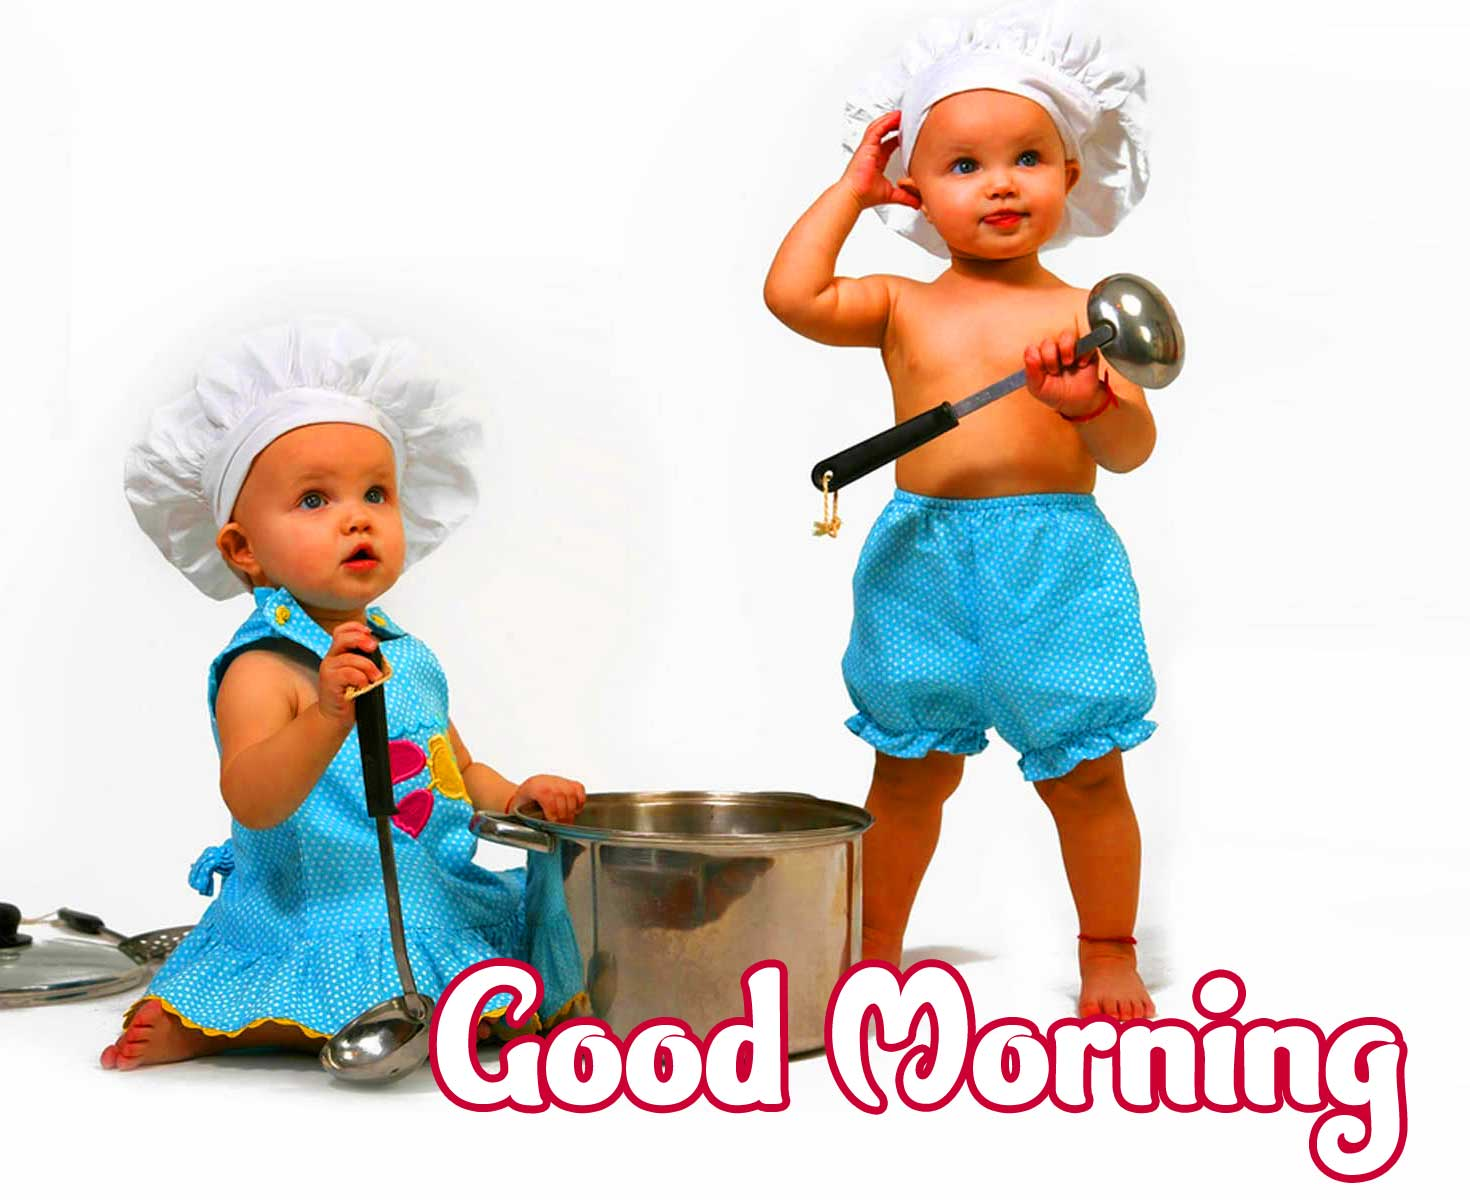 Cute Baby Boys & Girls Good Morning Images pics for Facebook